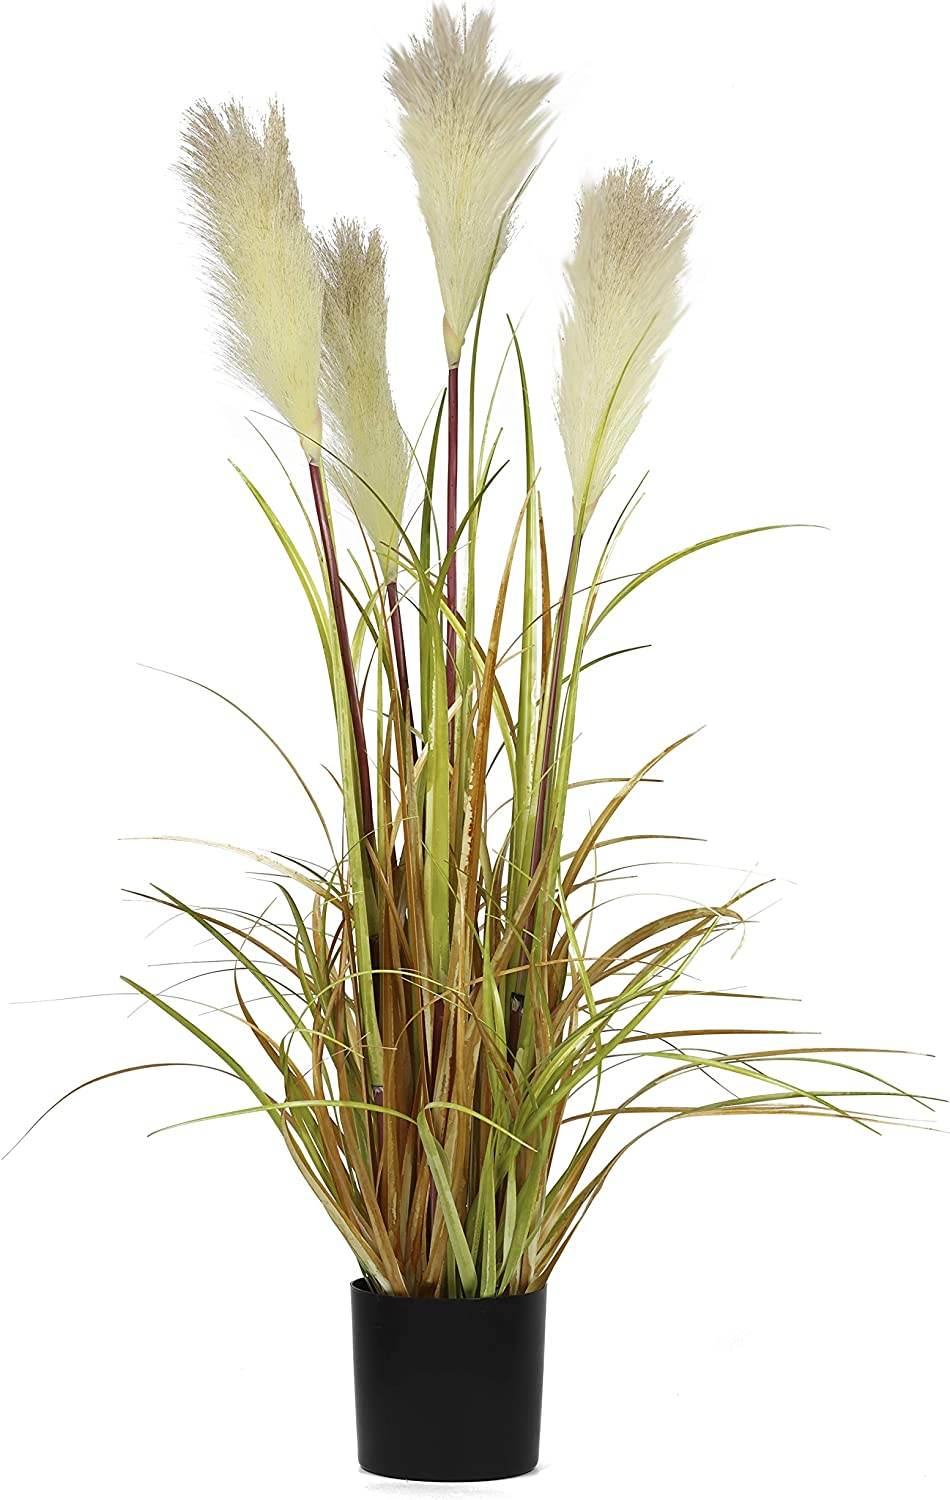 10 Long Grasses And 2 Grass Bushes Artificial Plastic Plants